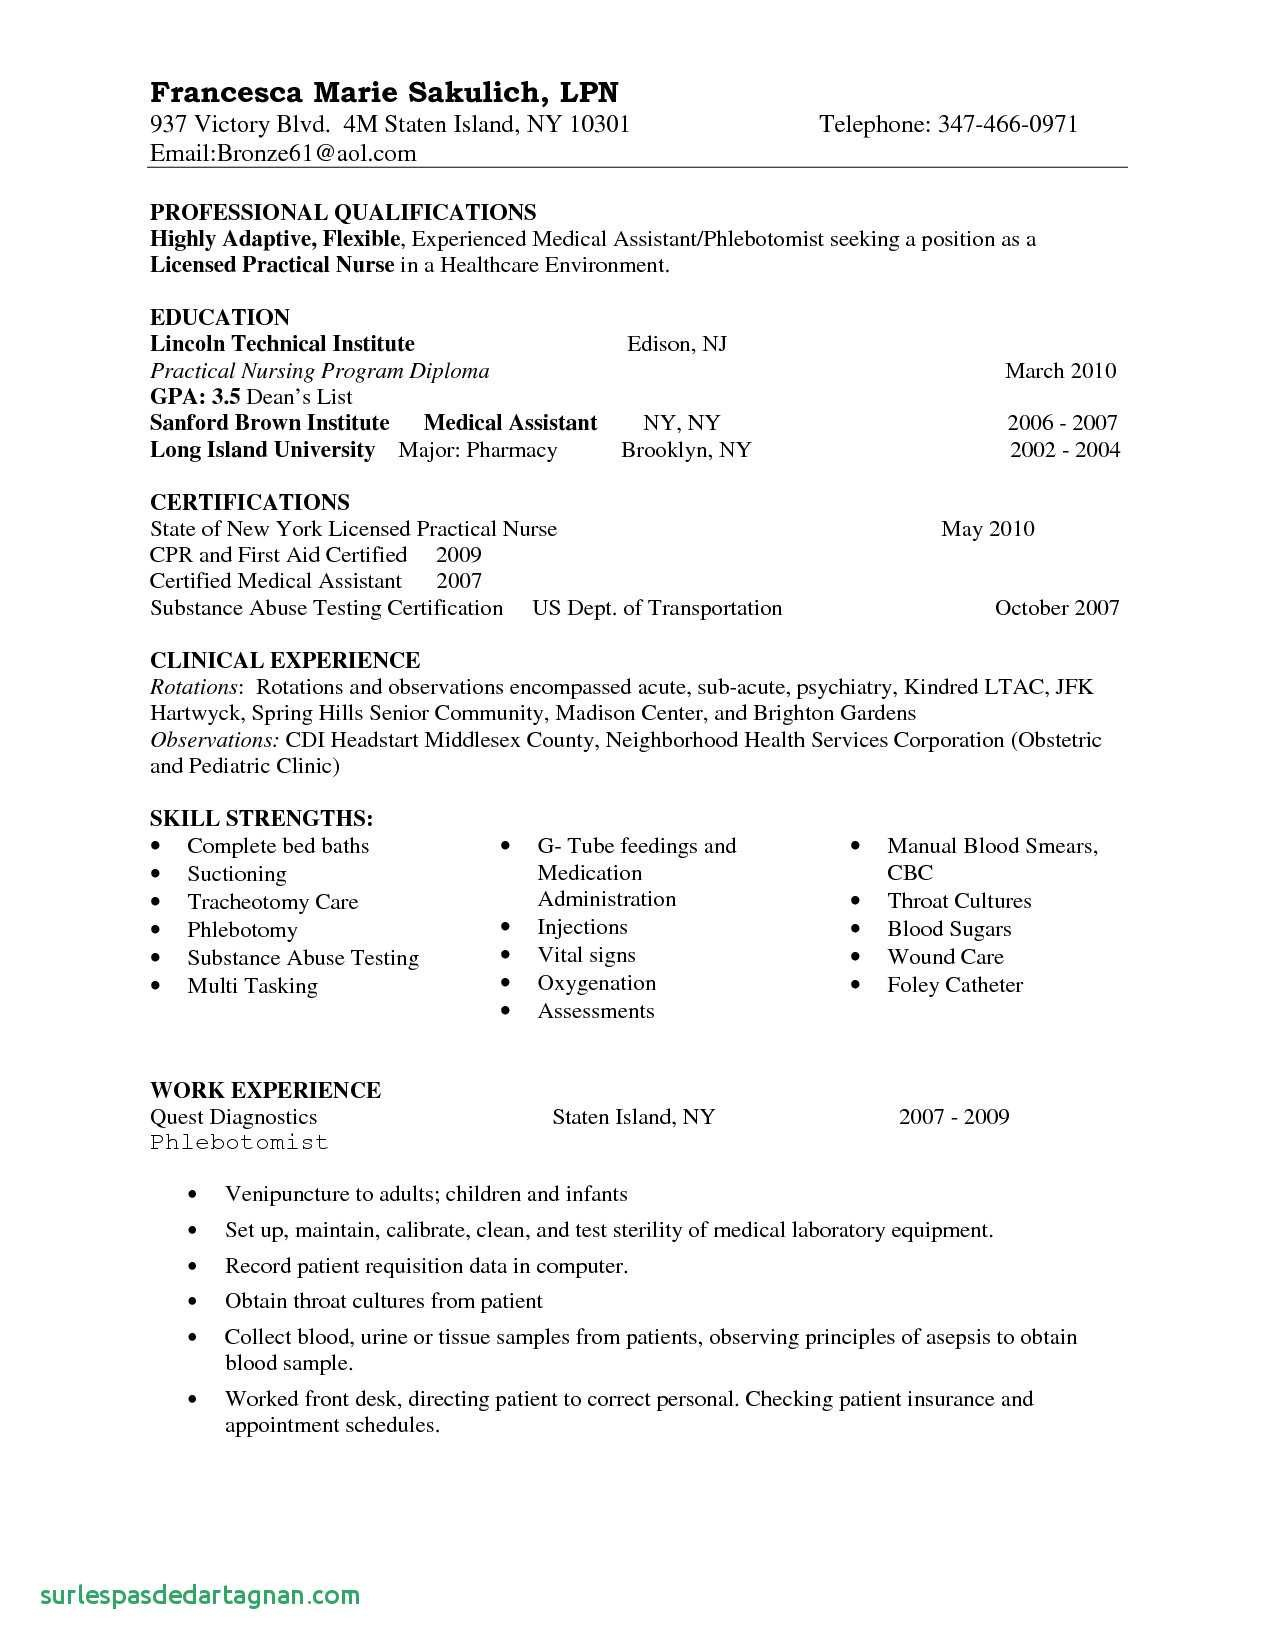 Resume Writing Services Nj - Writing A Great Resume Fresh Best Cover Letter Writing Service